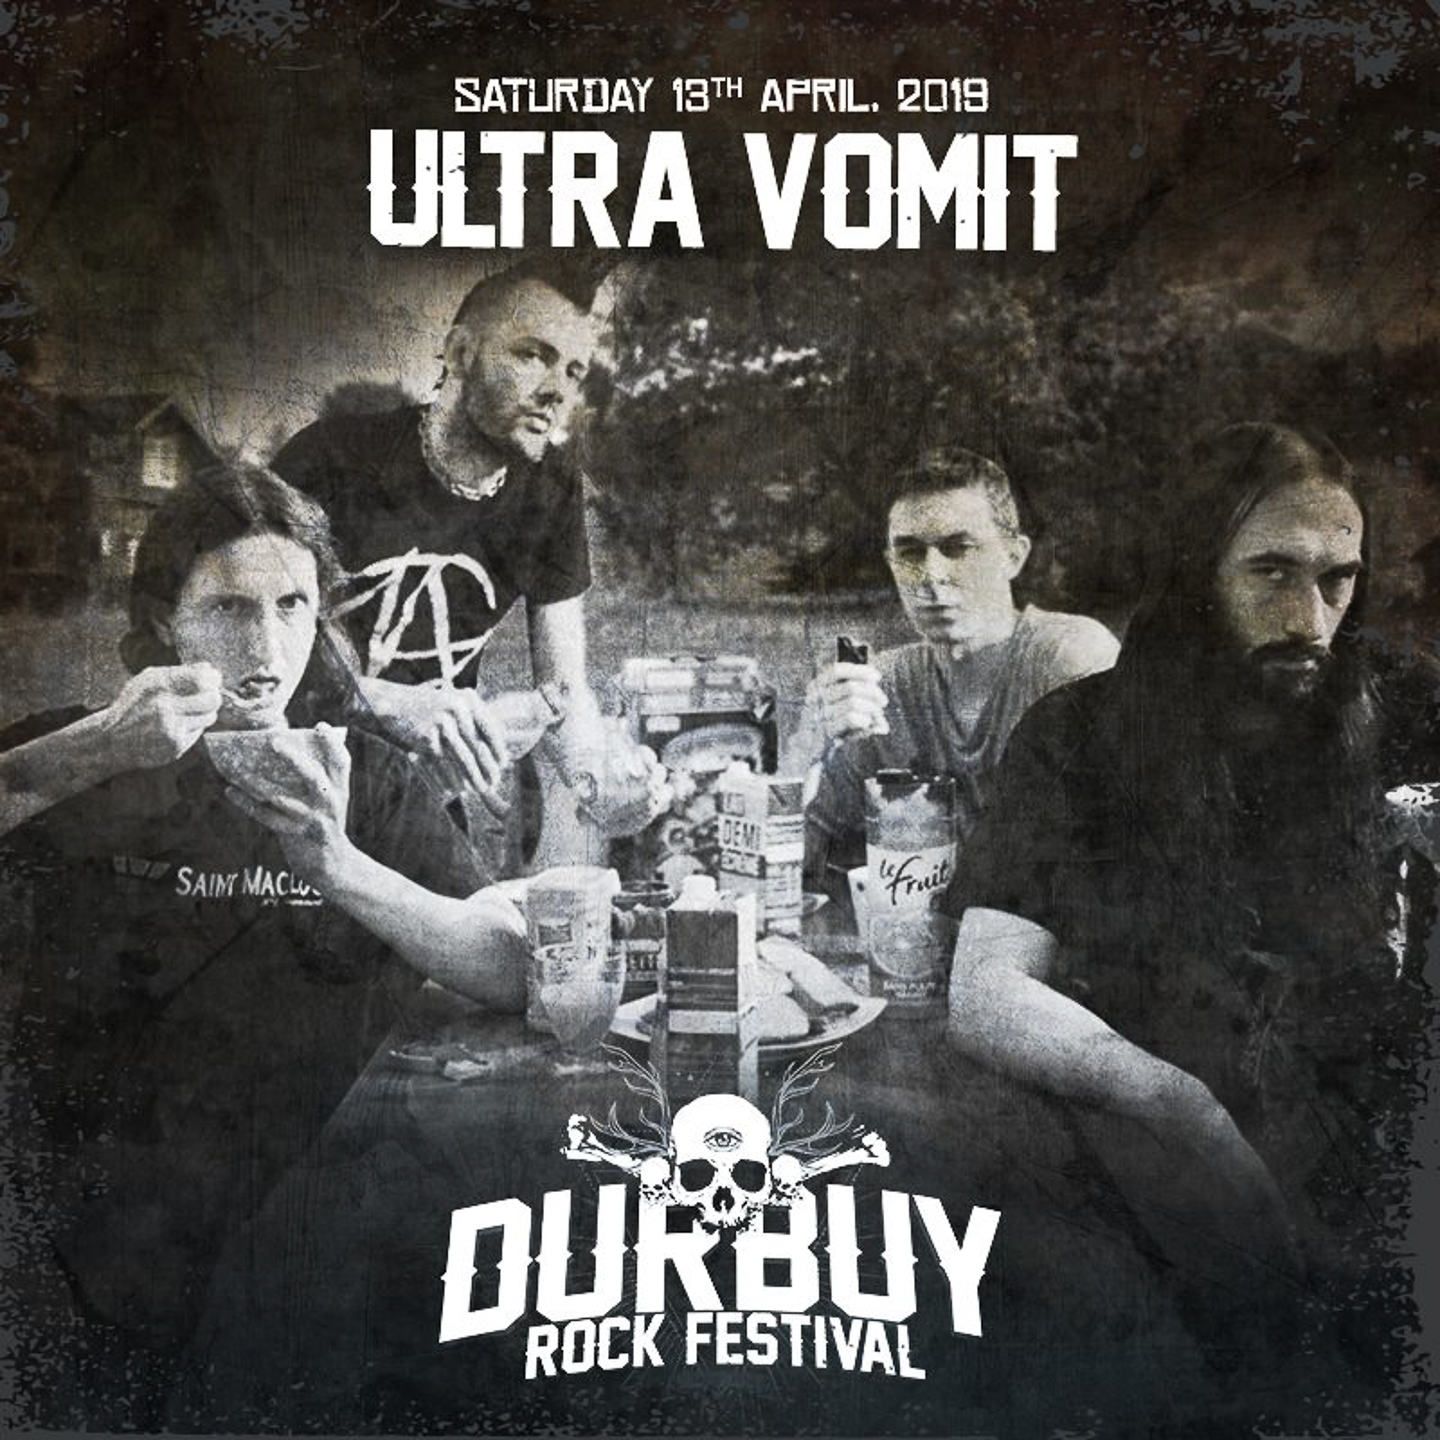 Ultra vomit Durbuy Rock Festival_